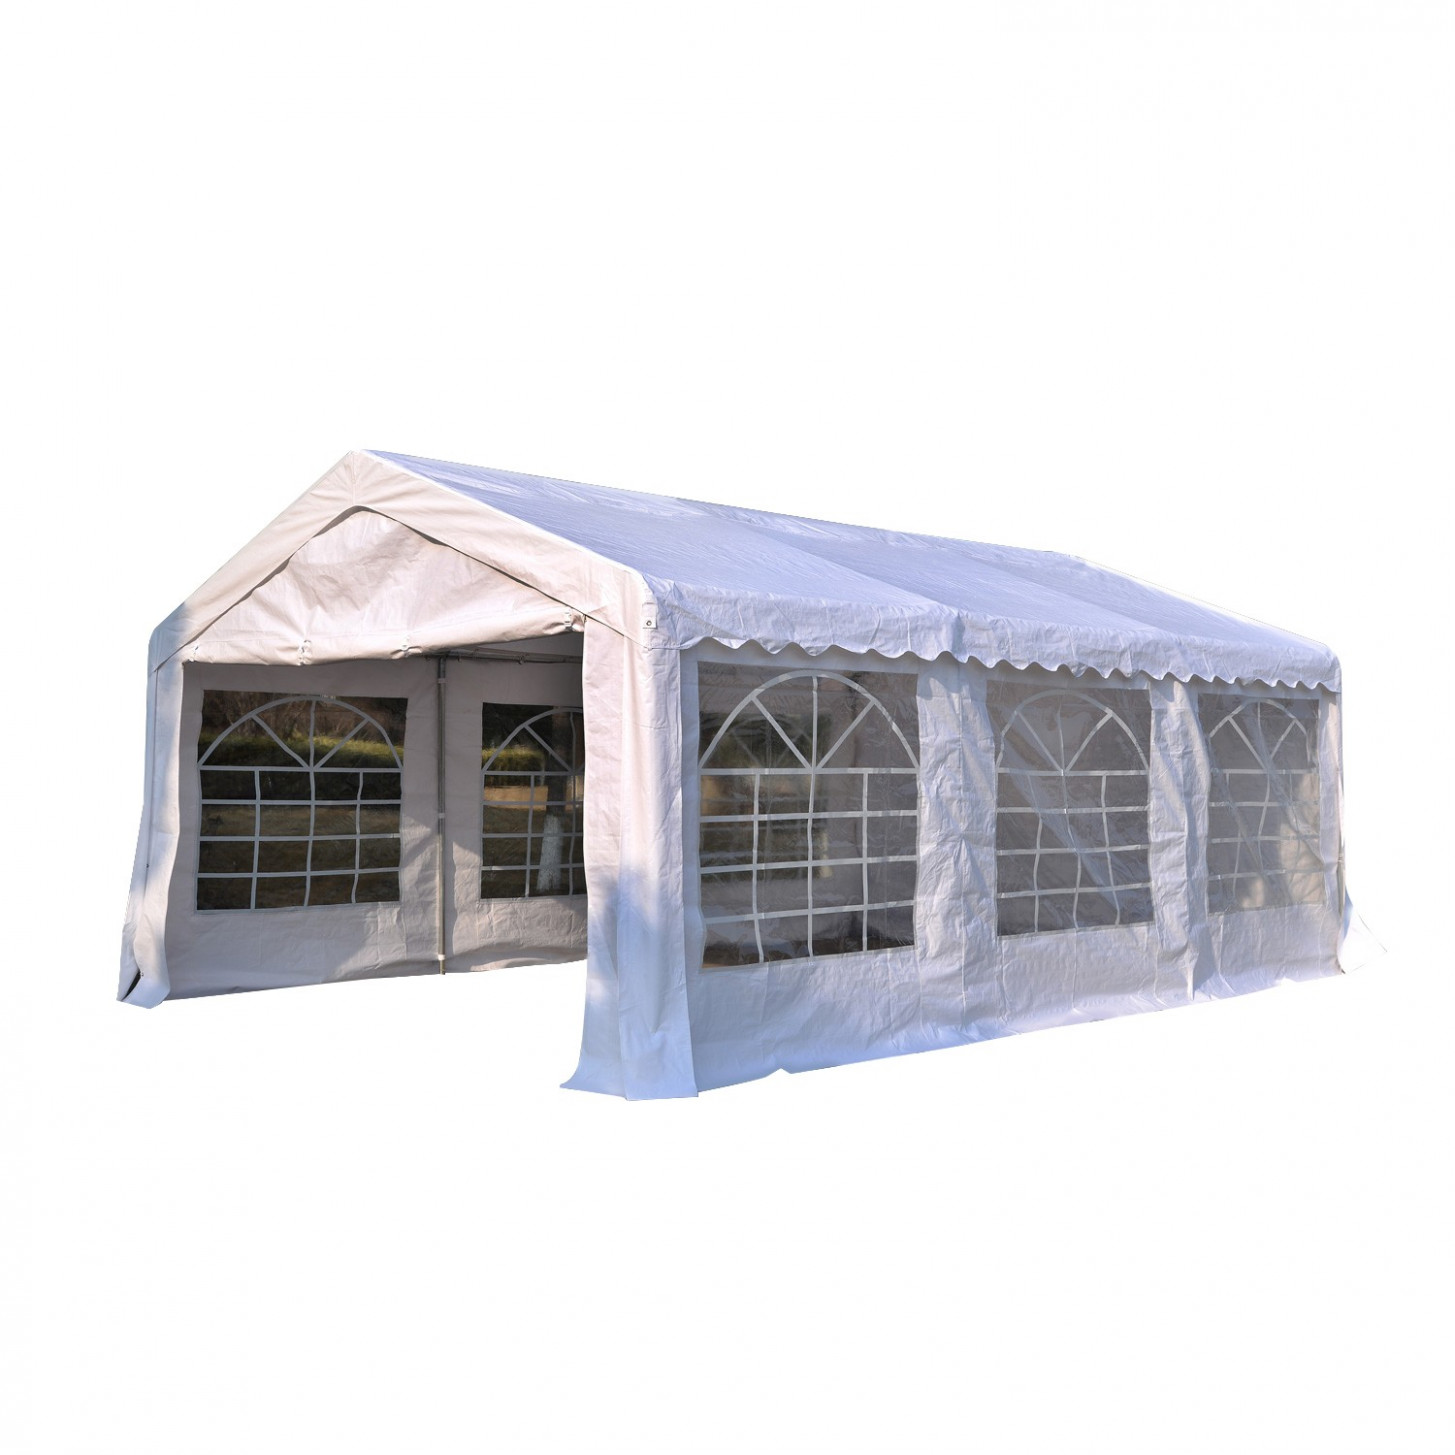 Outsunny 13'x26' Heavy Duty Outdoor Carport Wedding Party ..